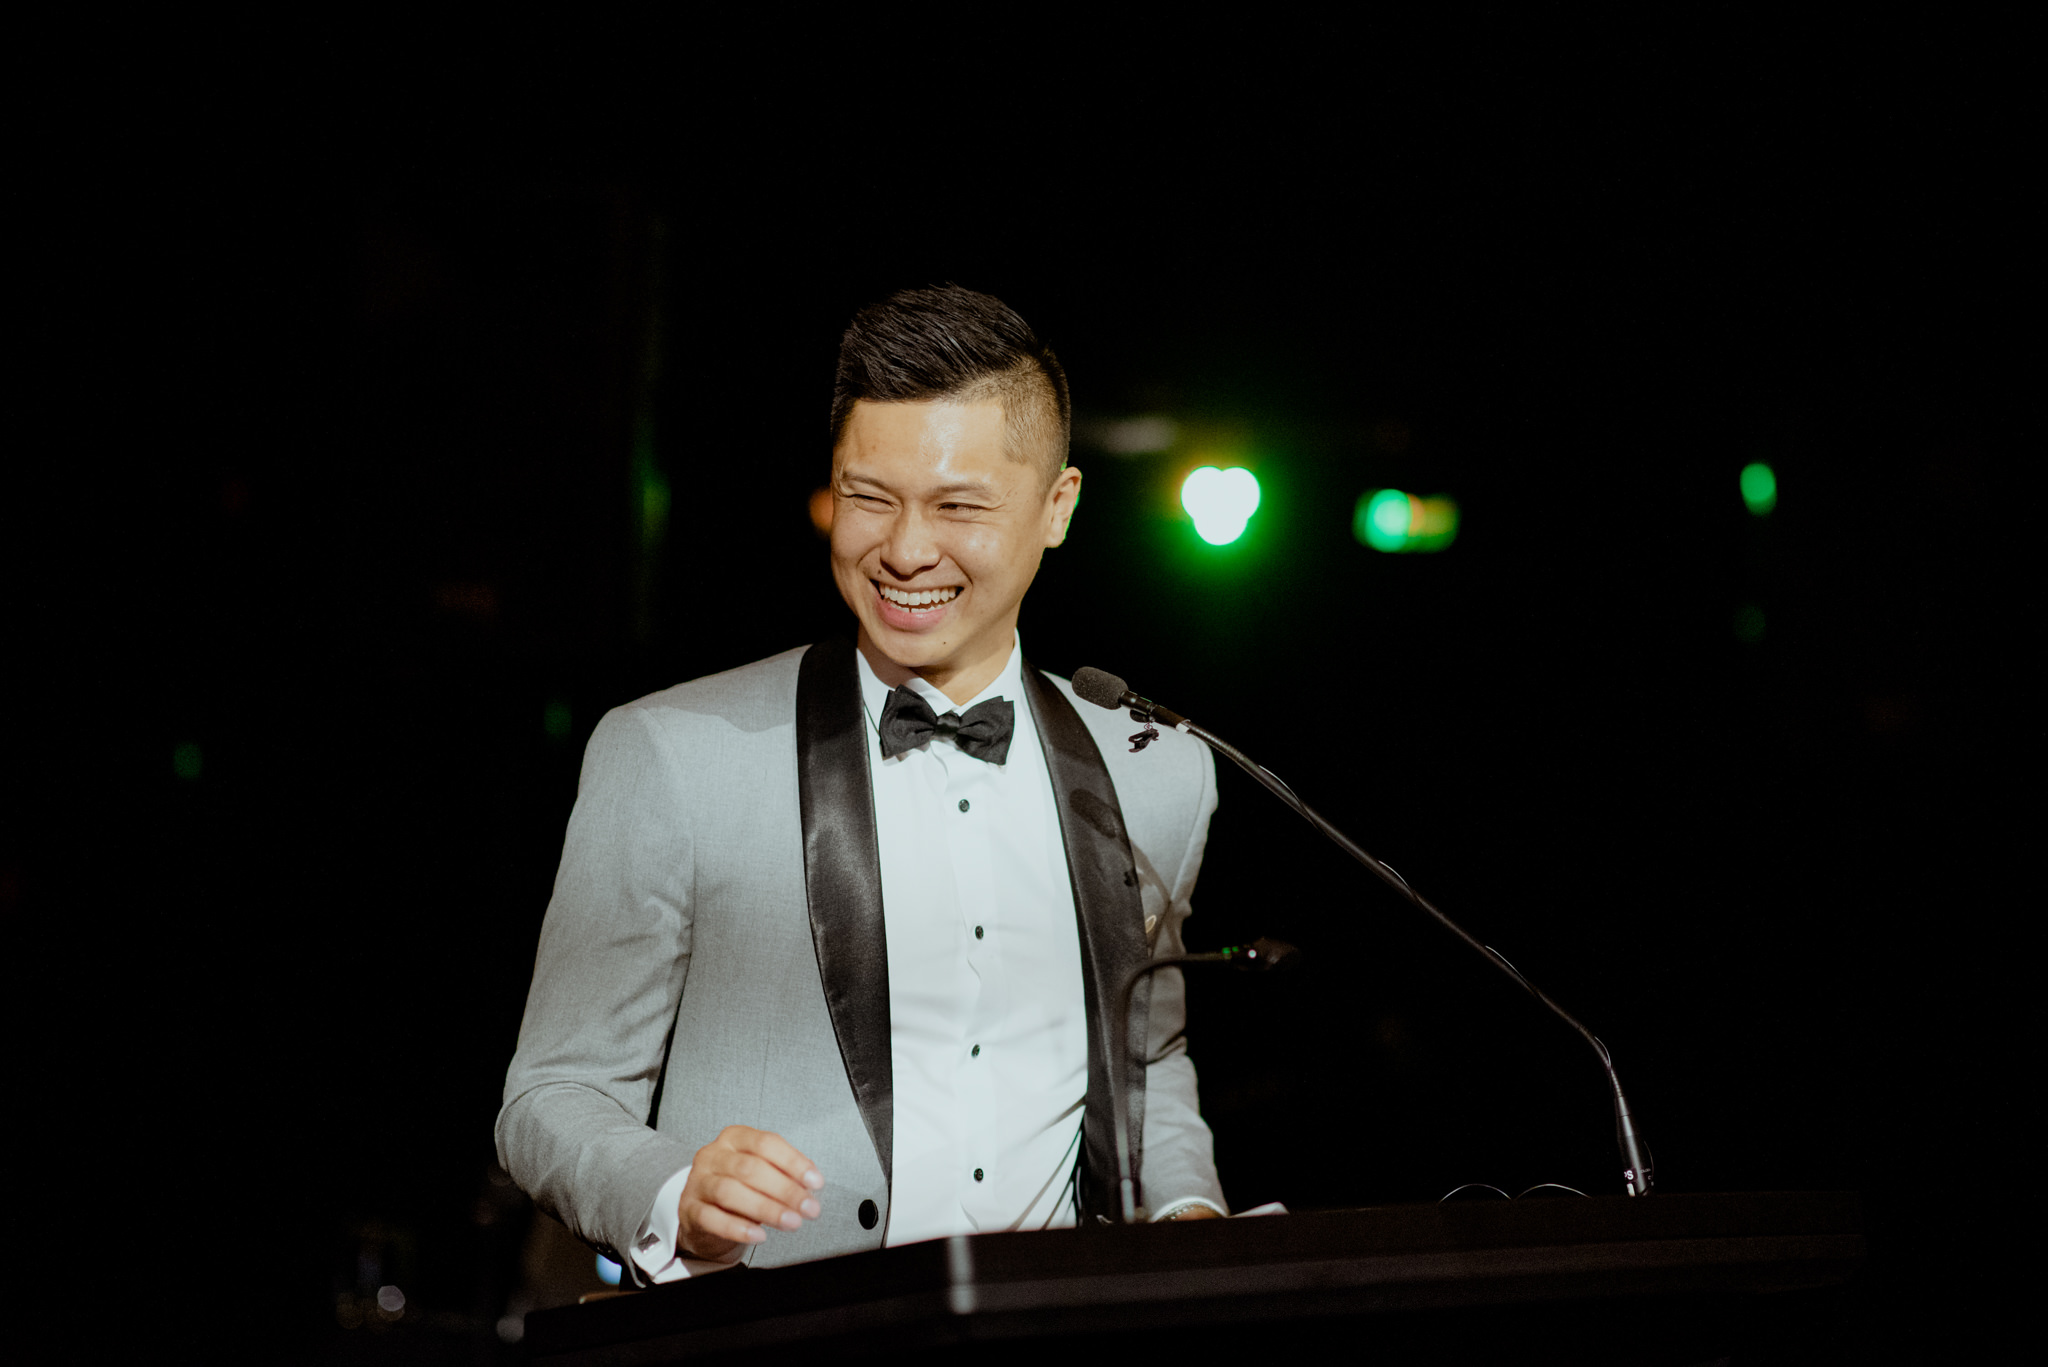 An Asian man in a tuxedo stands at a podium and laughs